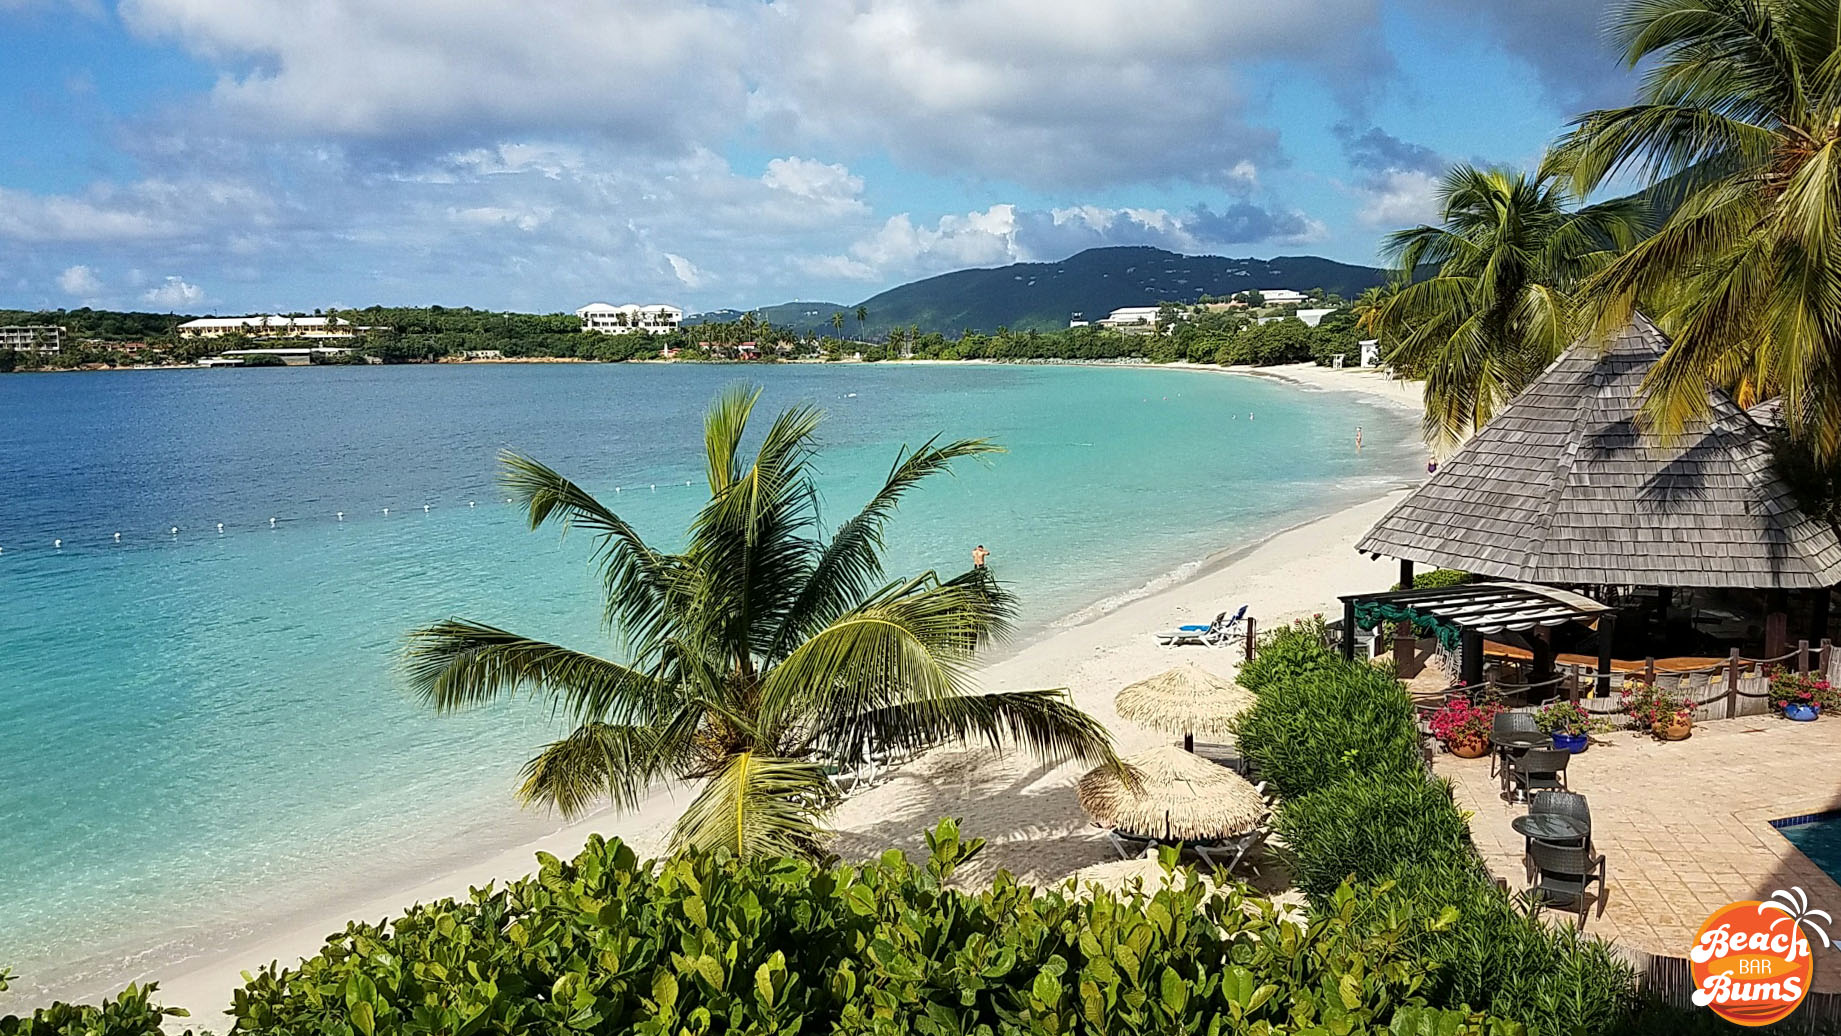 emerald beach resort, caribbean, lindbergh bay, st. thomas, usvi, us virgin islands